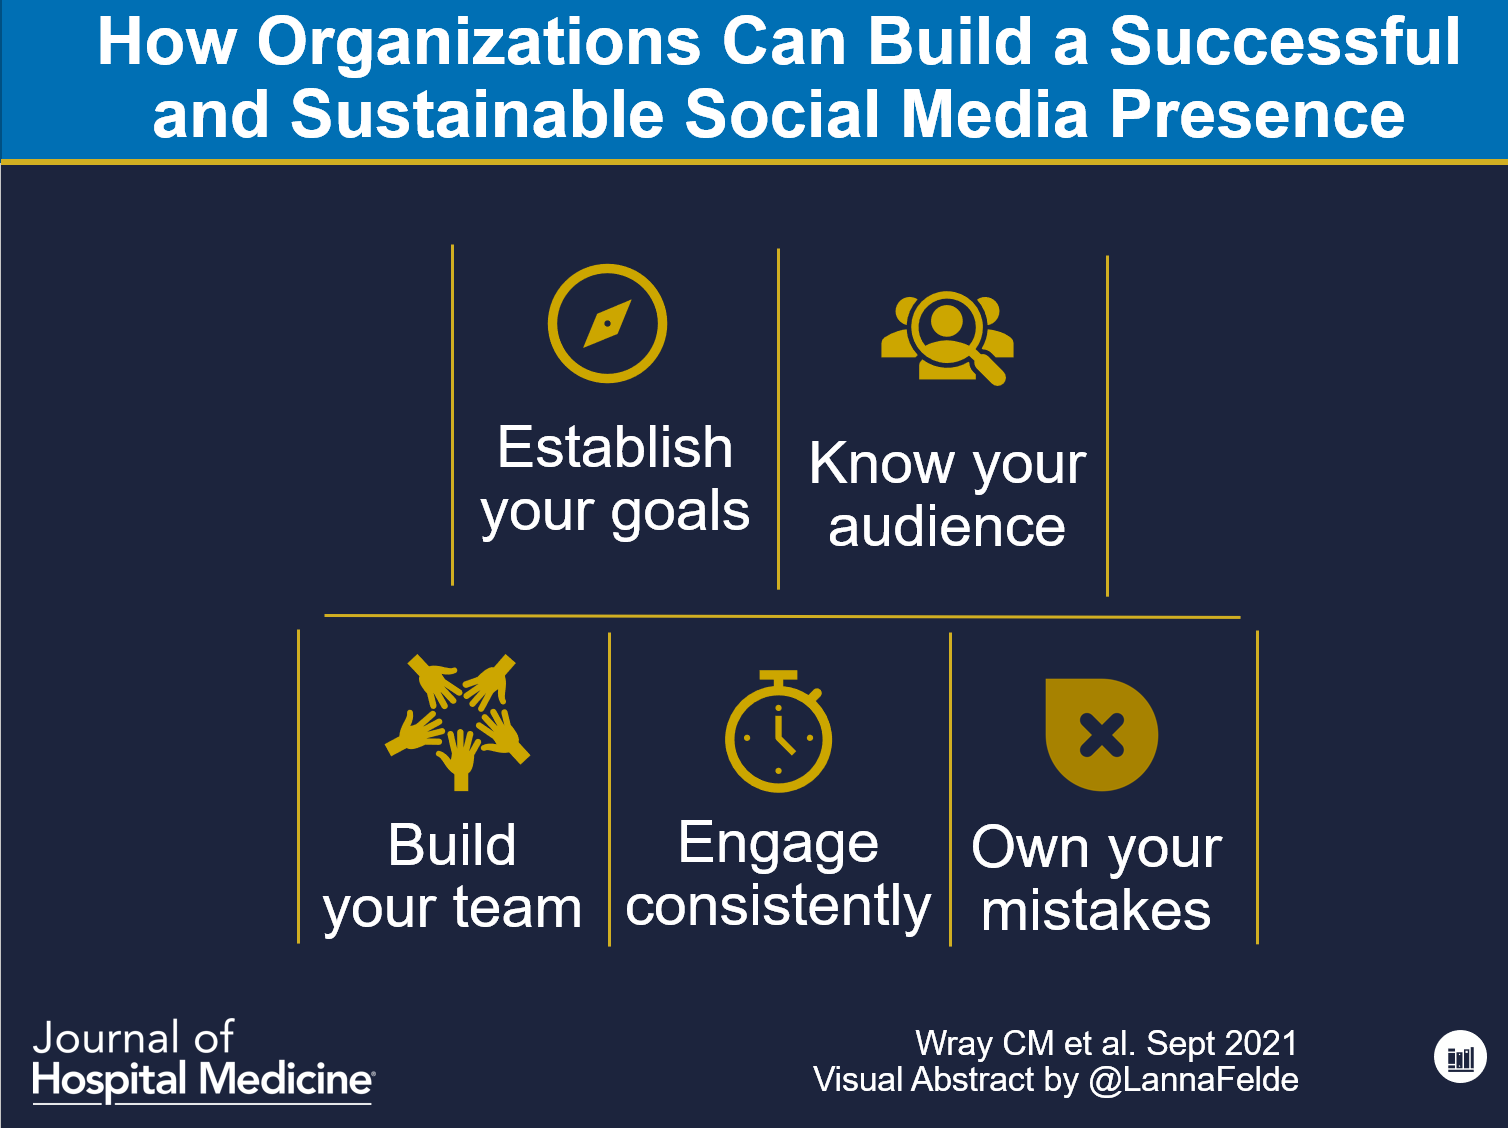 How Organizations Can Build a Successful and Sustainable Social Media Presence